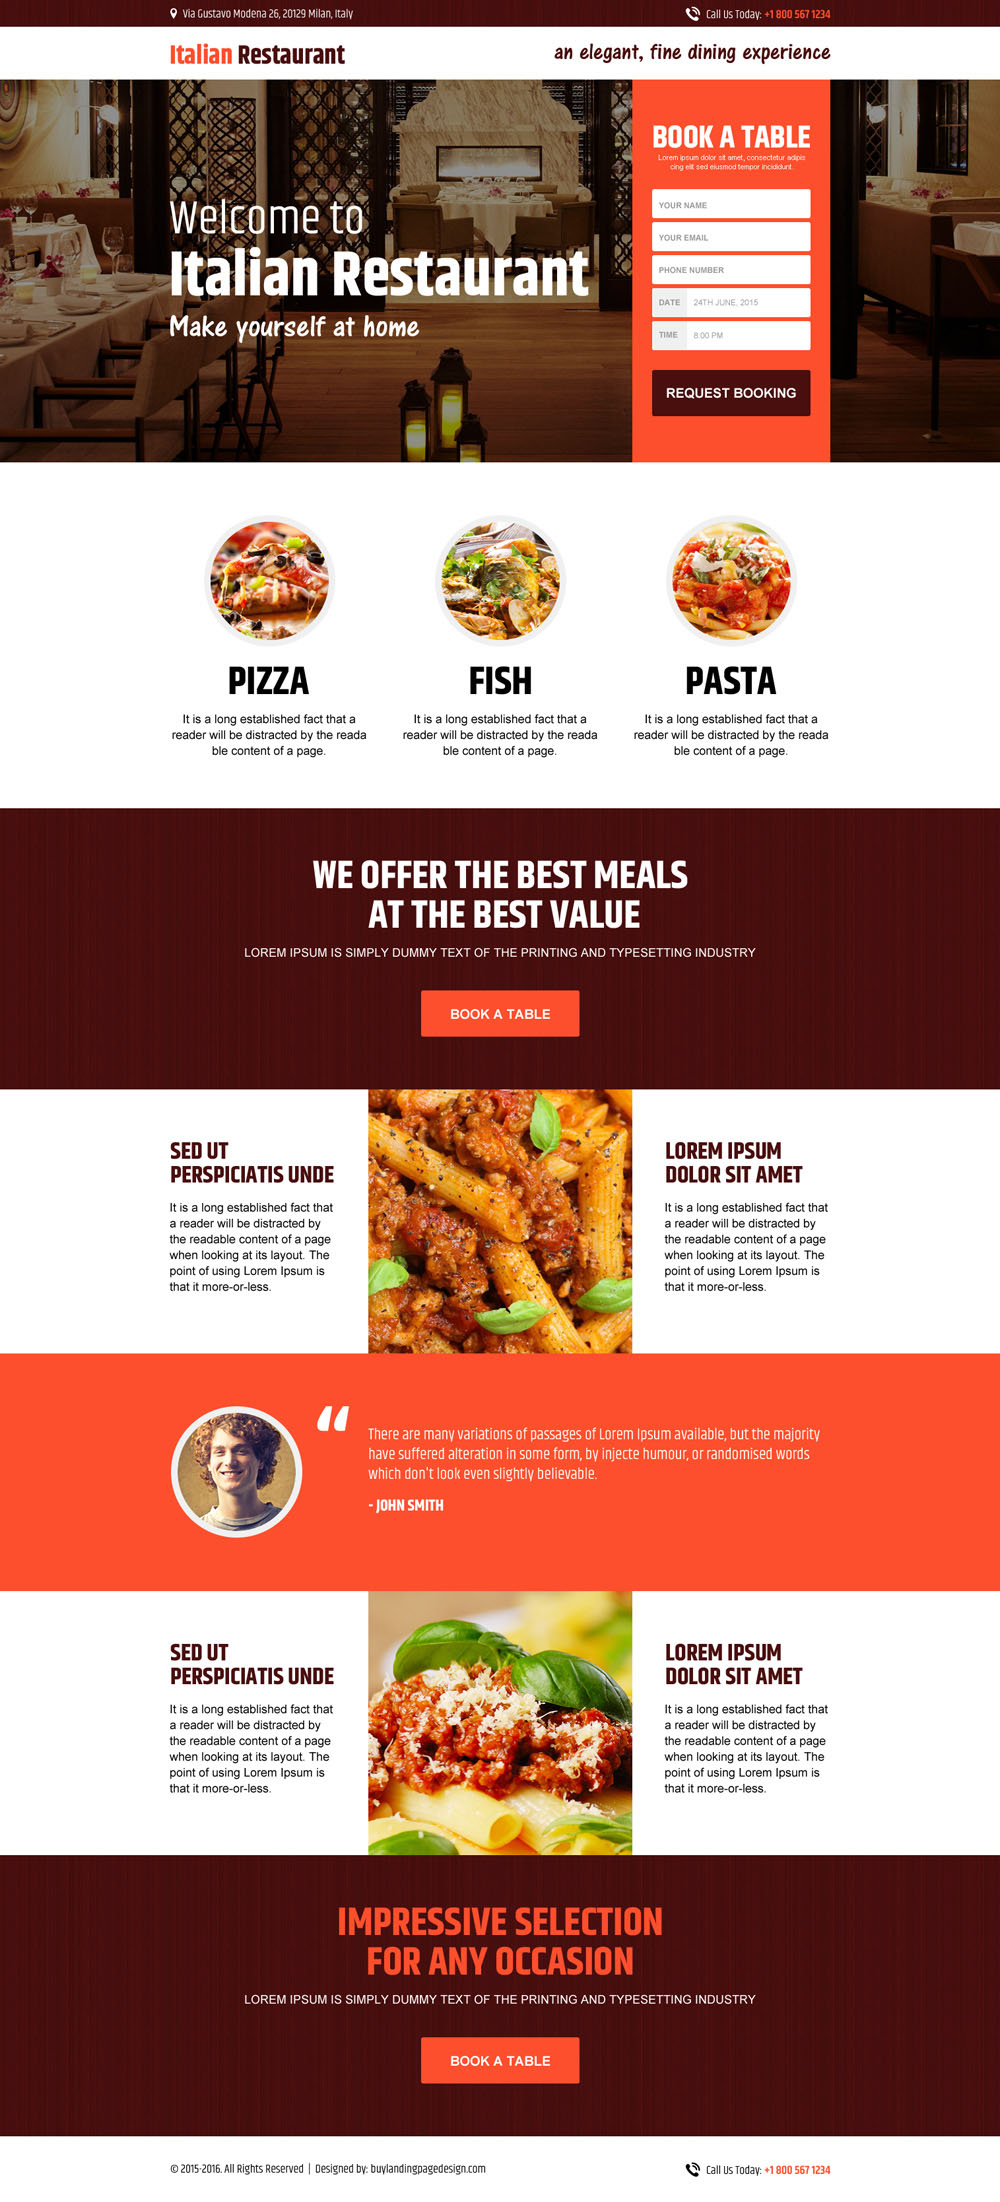 italian-restaurant-lead-capture-converting-landing-page-design-001